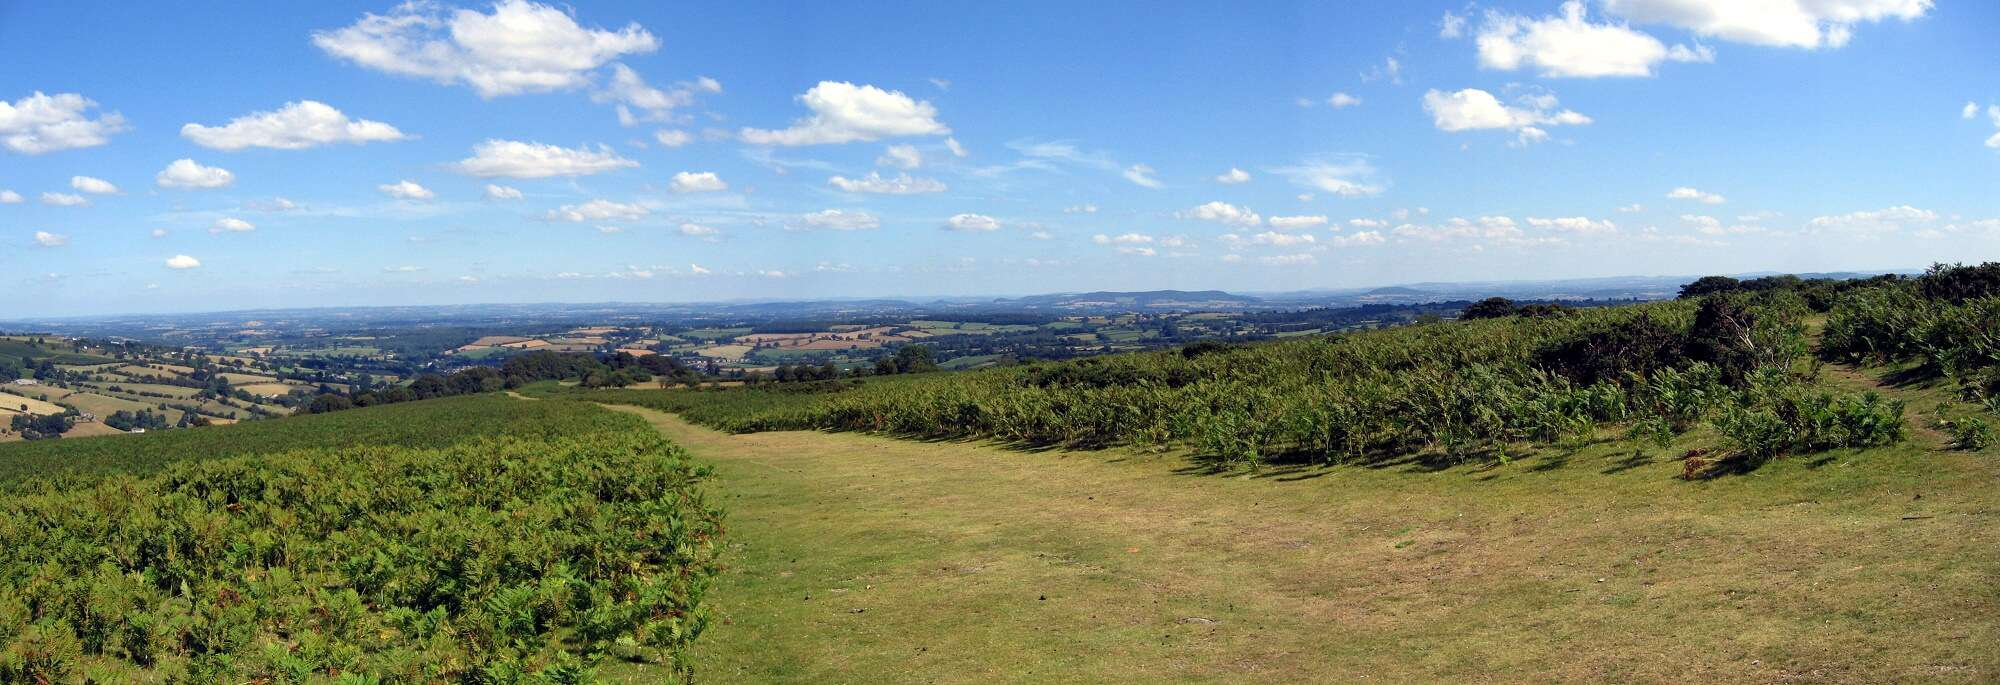 Panoramic shot of the mountain scenery on the Offa's Dyke Path